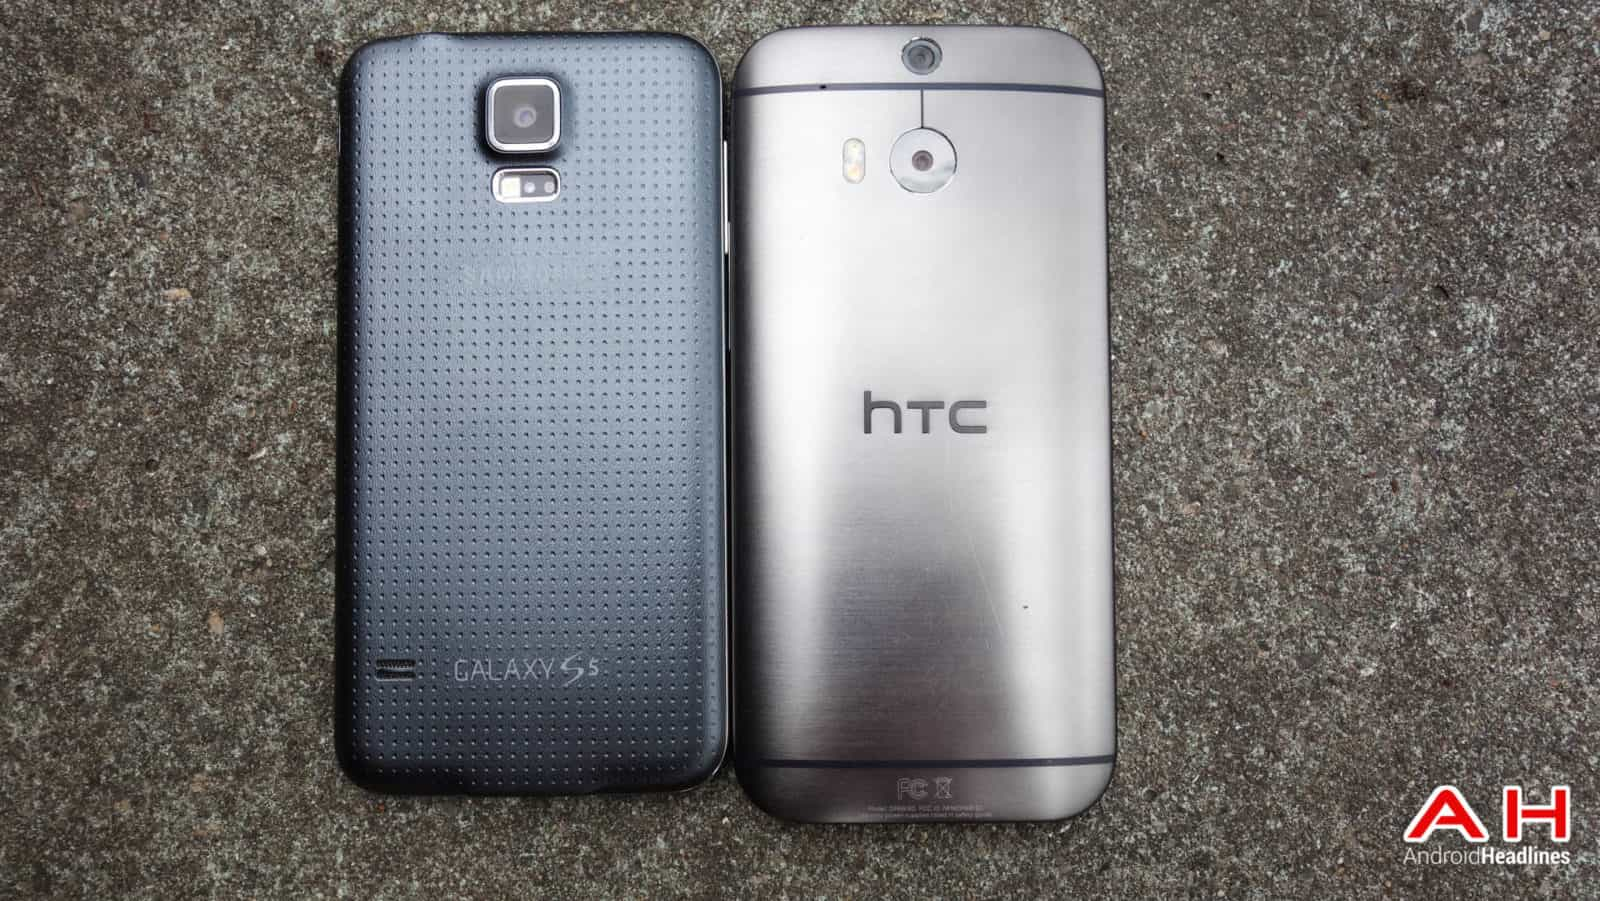 Samsung-Galaxy-S5-vs-HTC-One-M8-AH-9